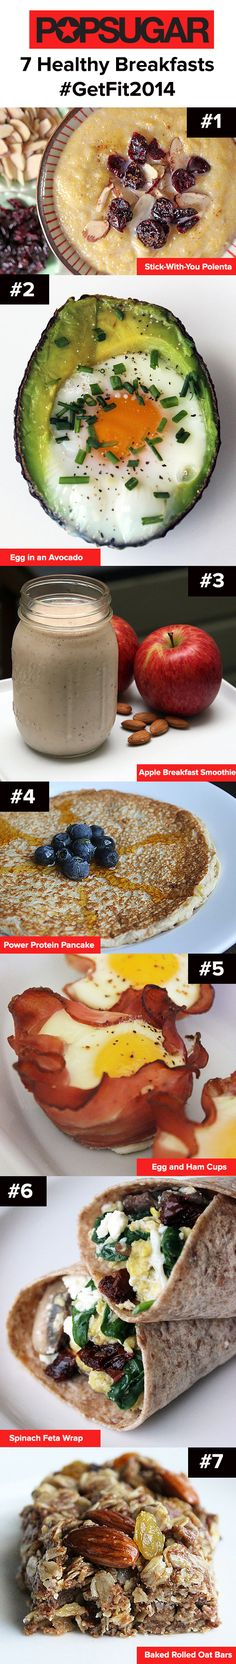 7 Day of Breakfast! Try a new breakfast every morning with these tasty, healthy, and nutritious options.